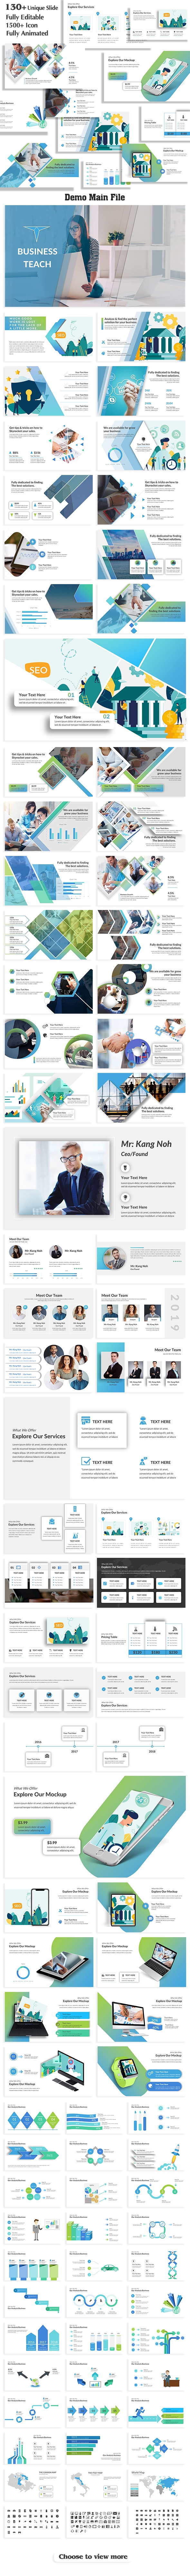 Business Teach Keynote Template - Business Keynote Templates